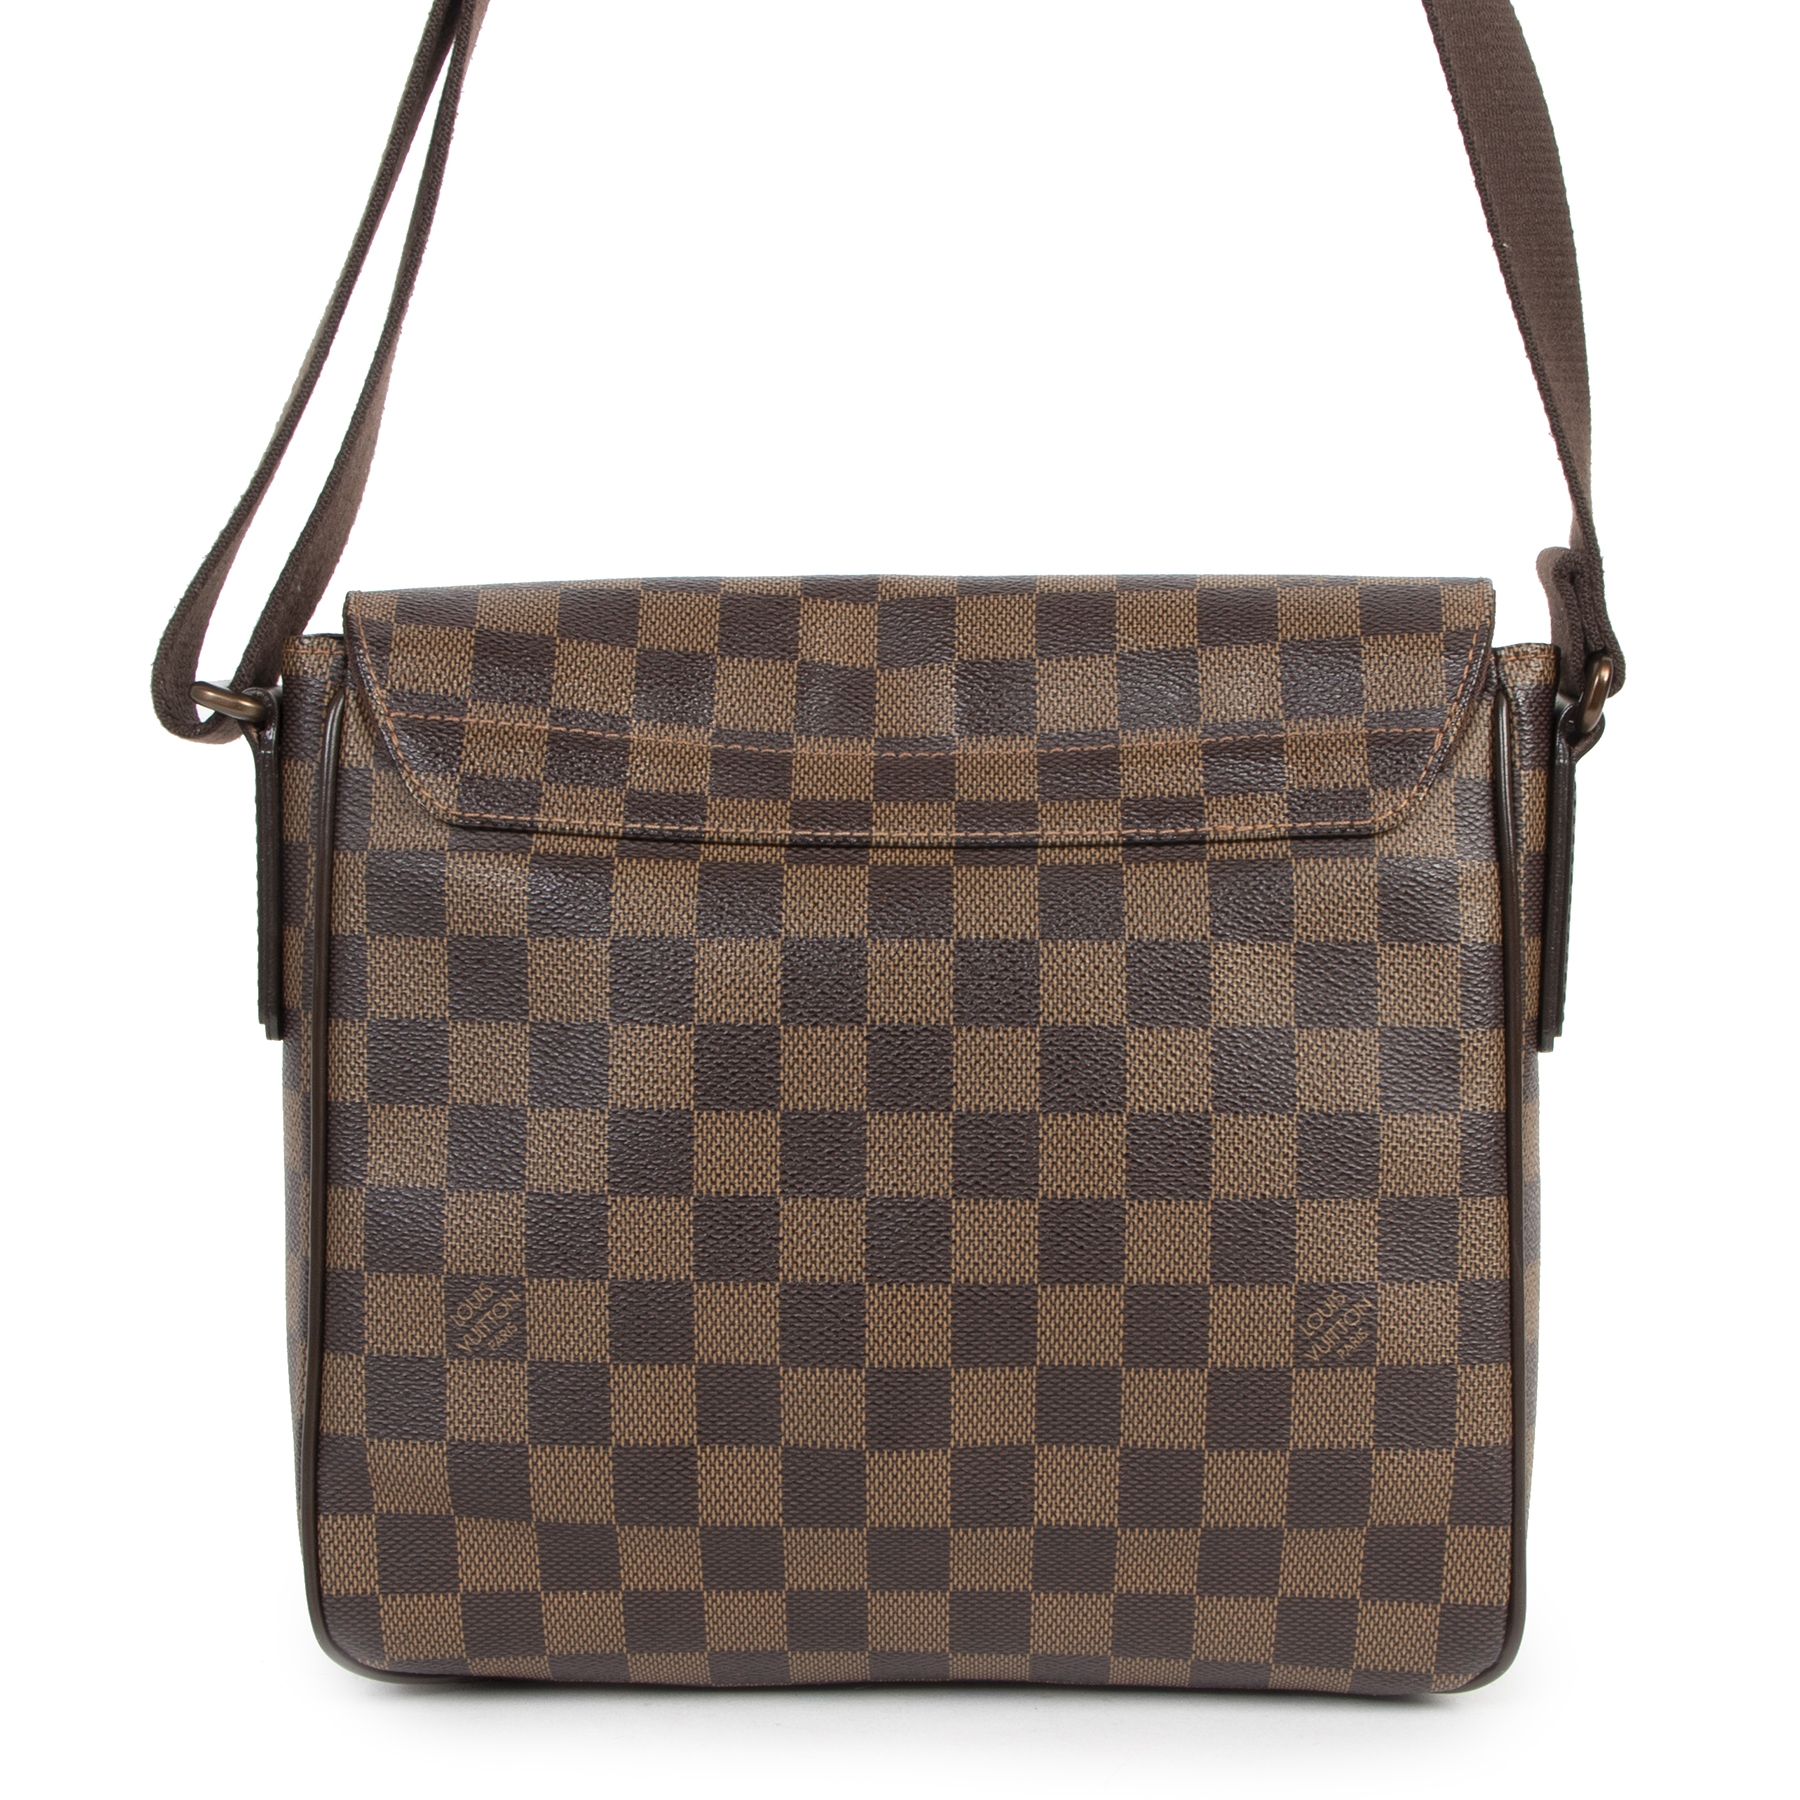 Authentic secondhand Louis Vuitton Damier Ebene District Pm Crossbody Bag designer bags fashion luxury vintage webshop safe secure online shopping